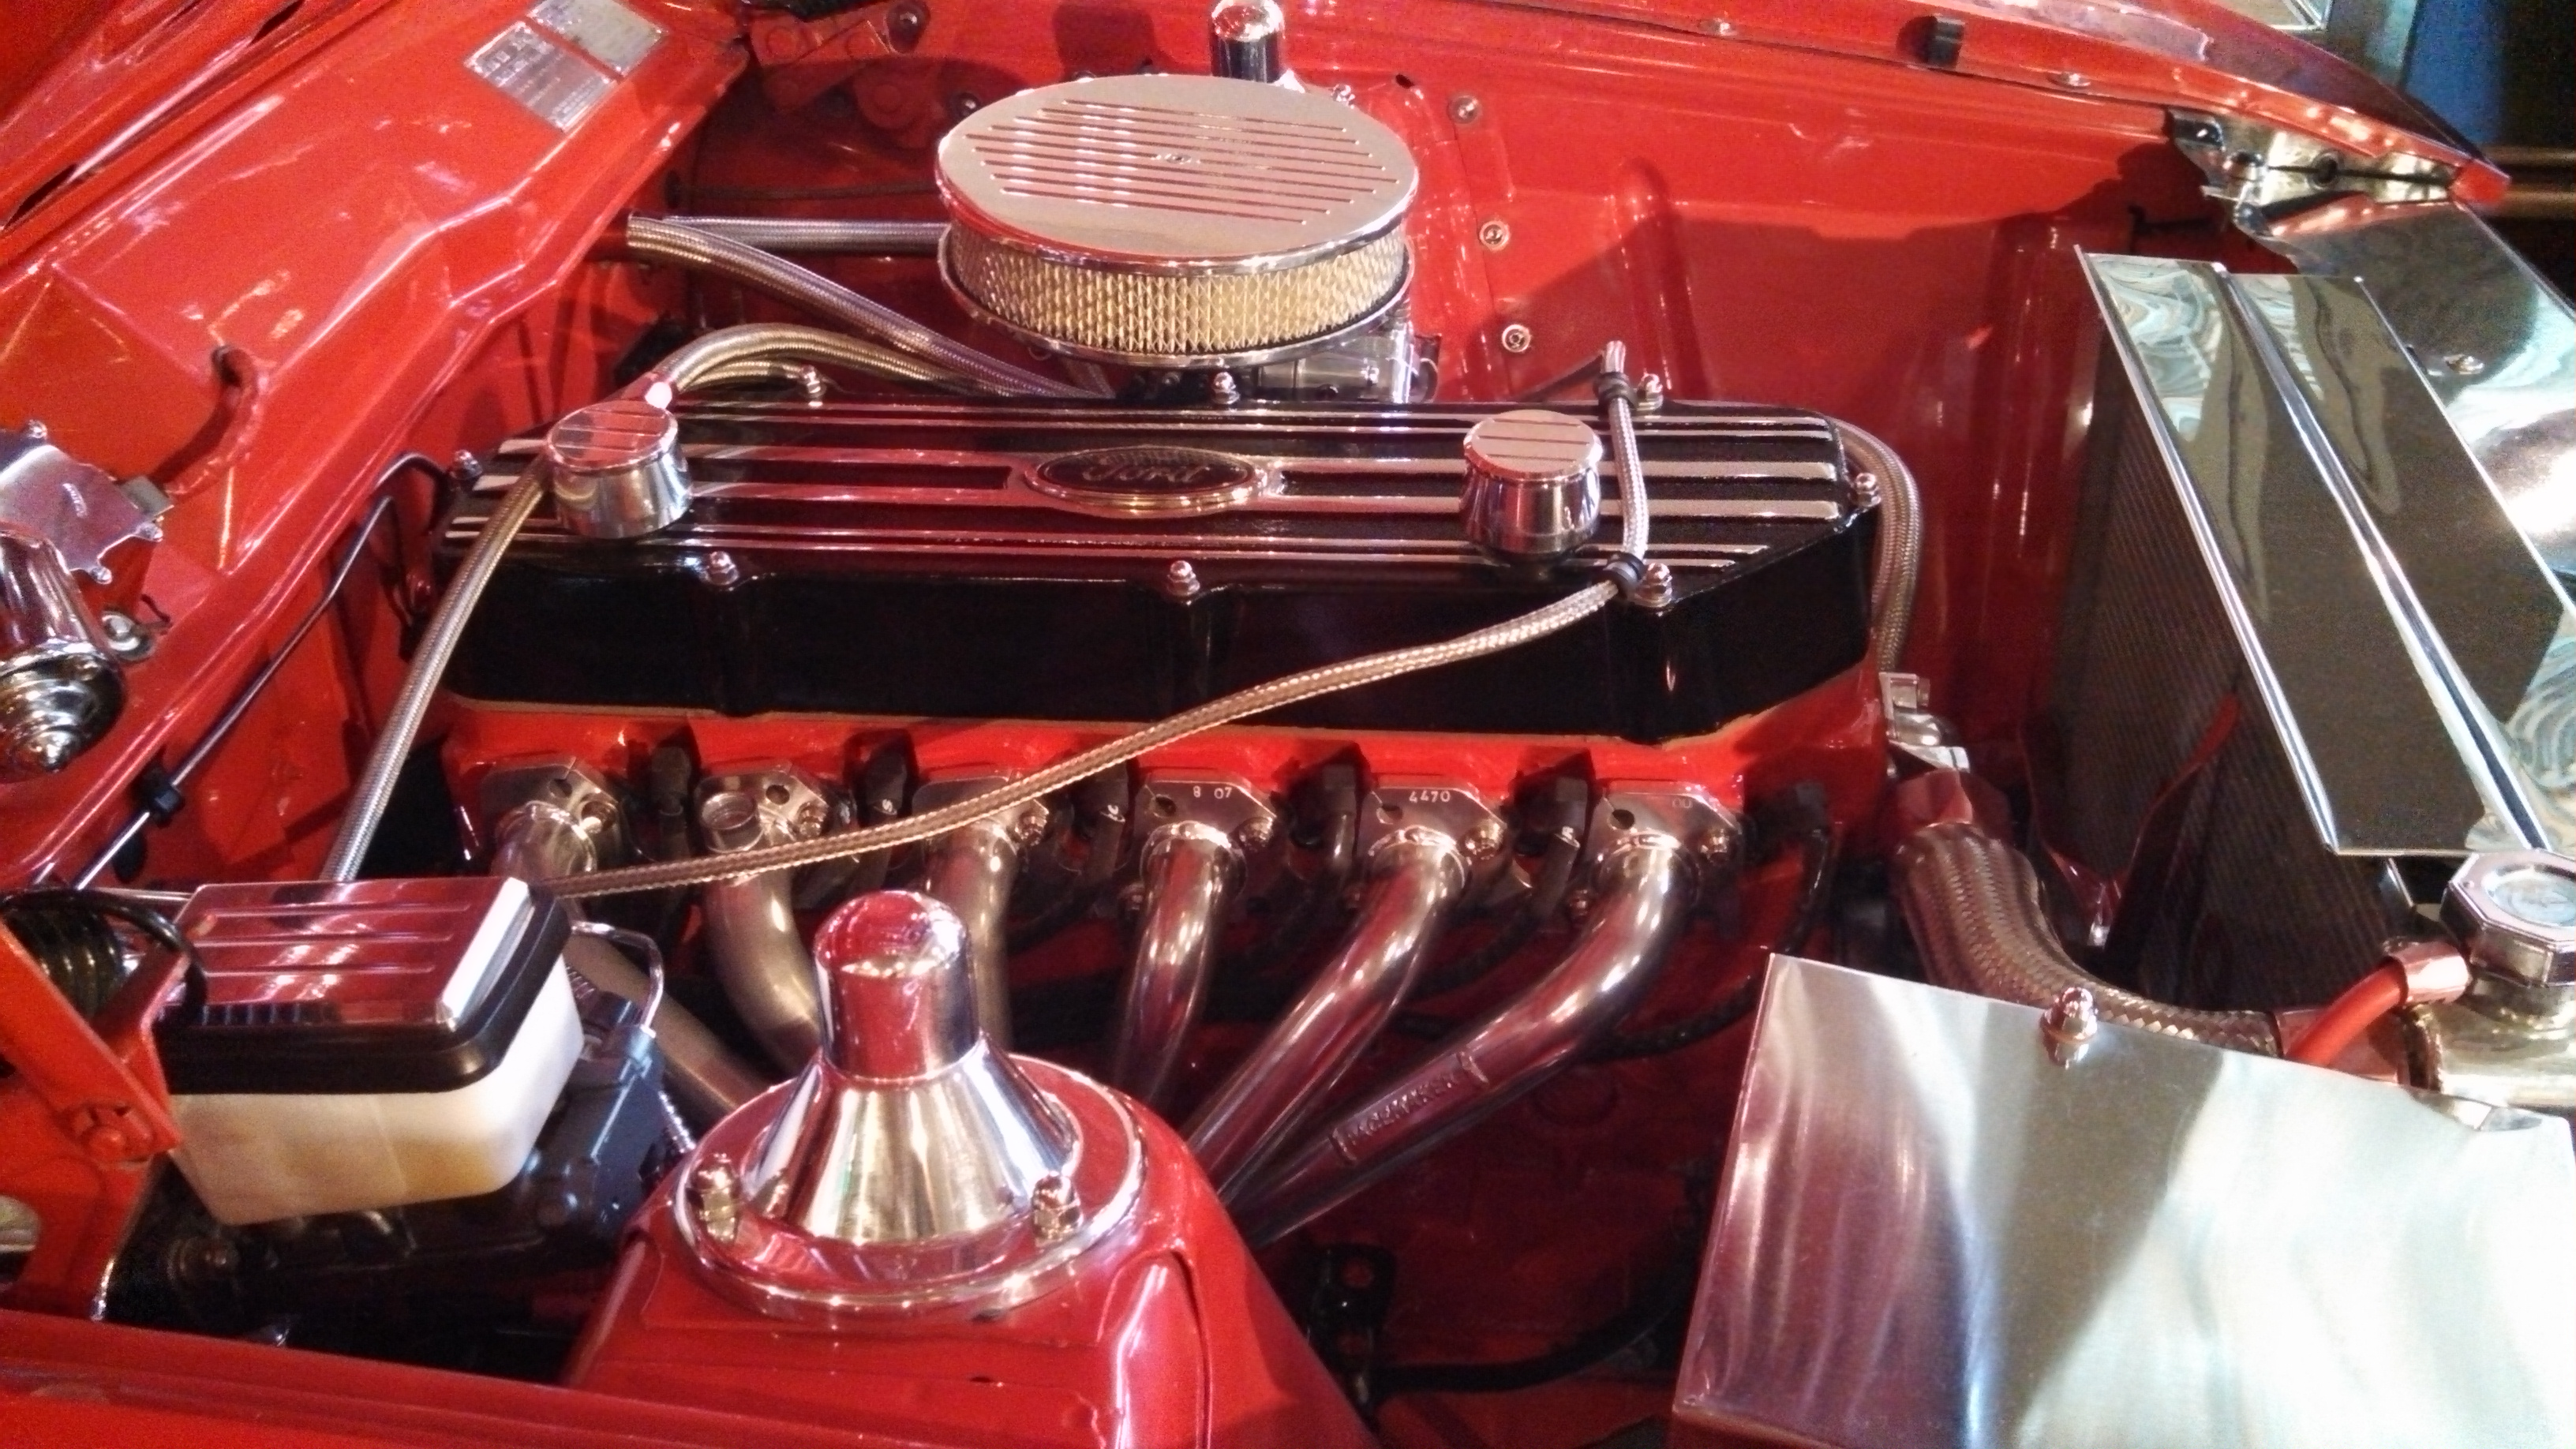 Engine bay of the wild XC panel van with AussieSpeed finned rocker cover